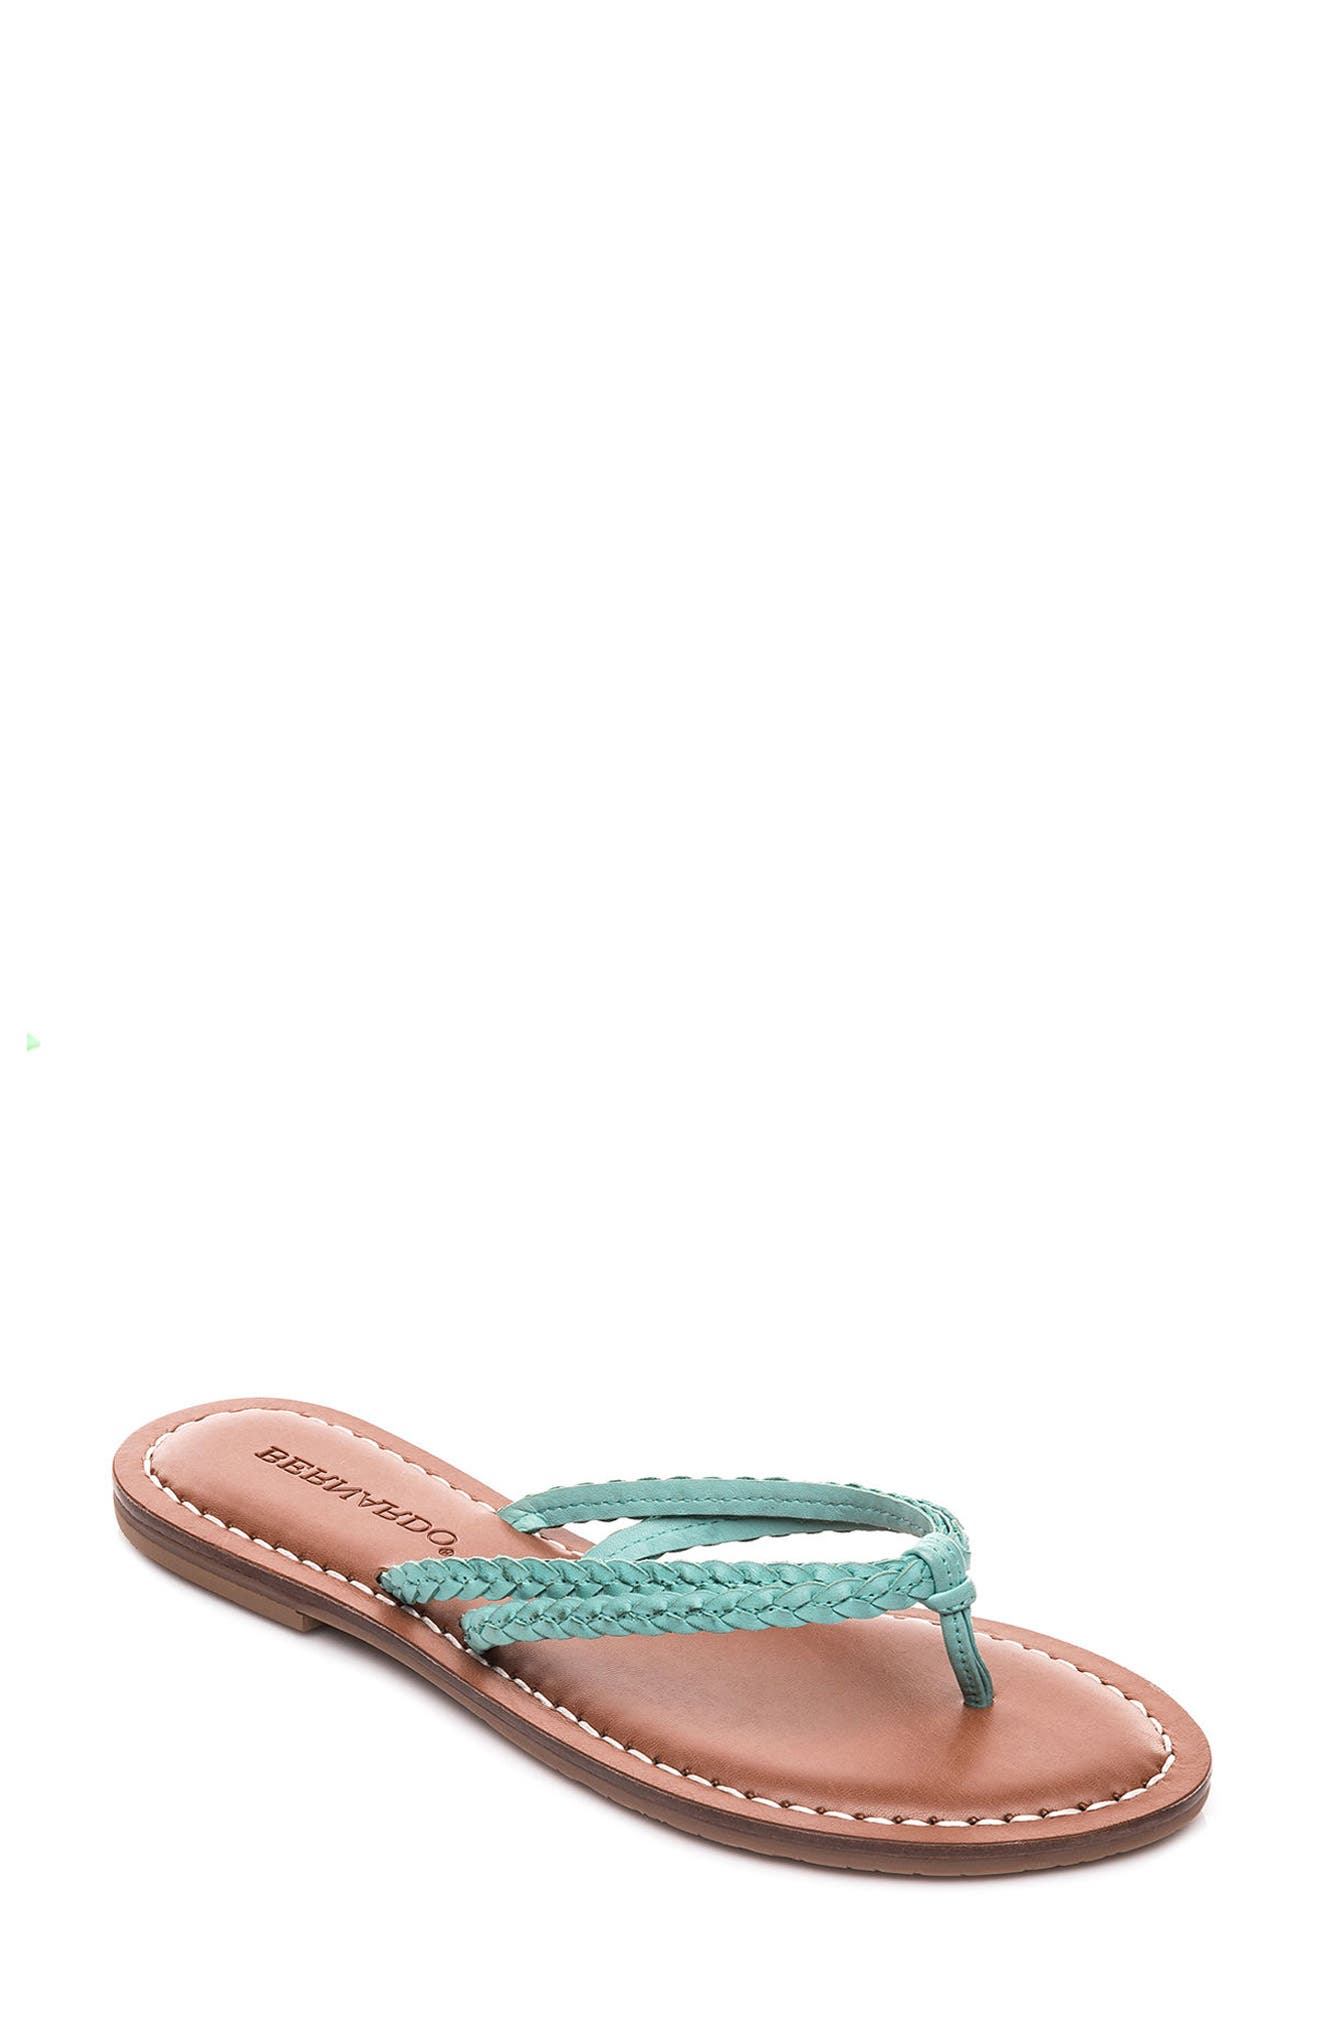 Bernardo Greta Braided Strap Sandal,                             Main thumbnail 3, color,